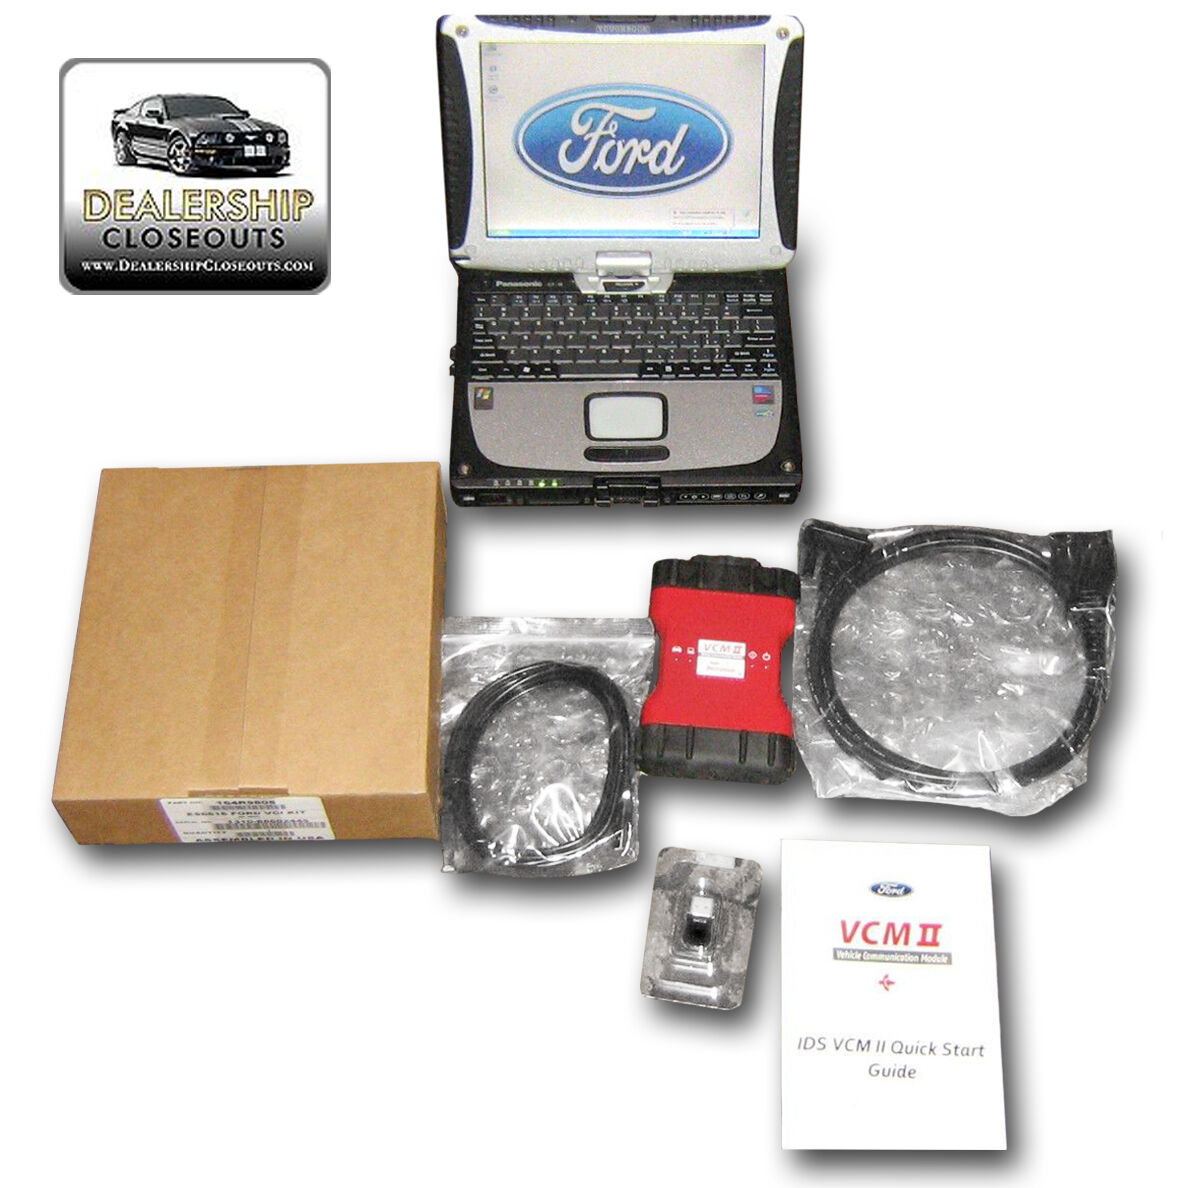 Subaru Dealers Minneapolis >> Ford Rotunda Dealer Ids Vcm Ii Vcm2 2 Toughbook Scan Tool W/subscription Vcm 2 - New Other (see ...